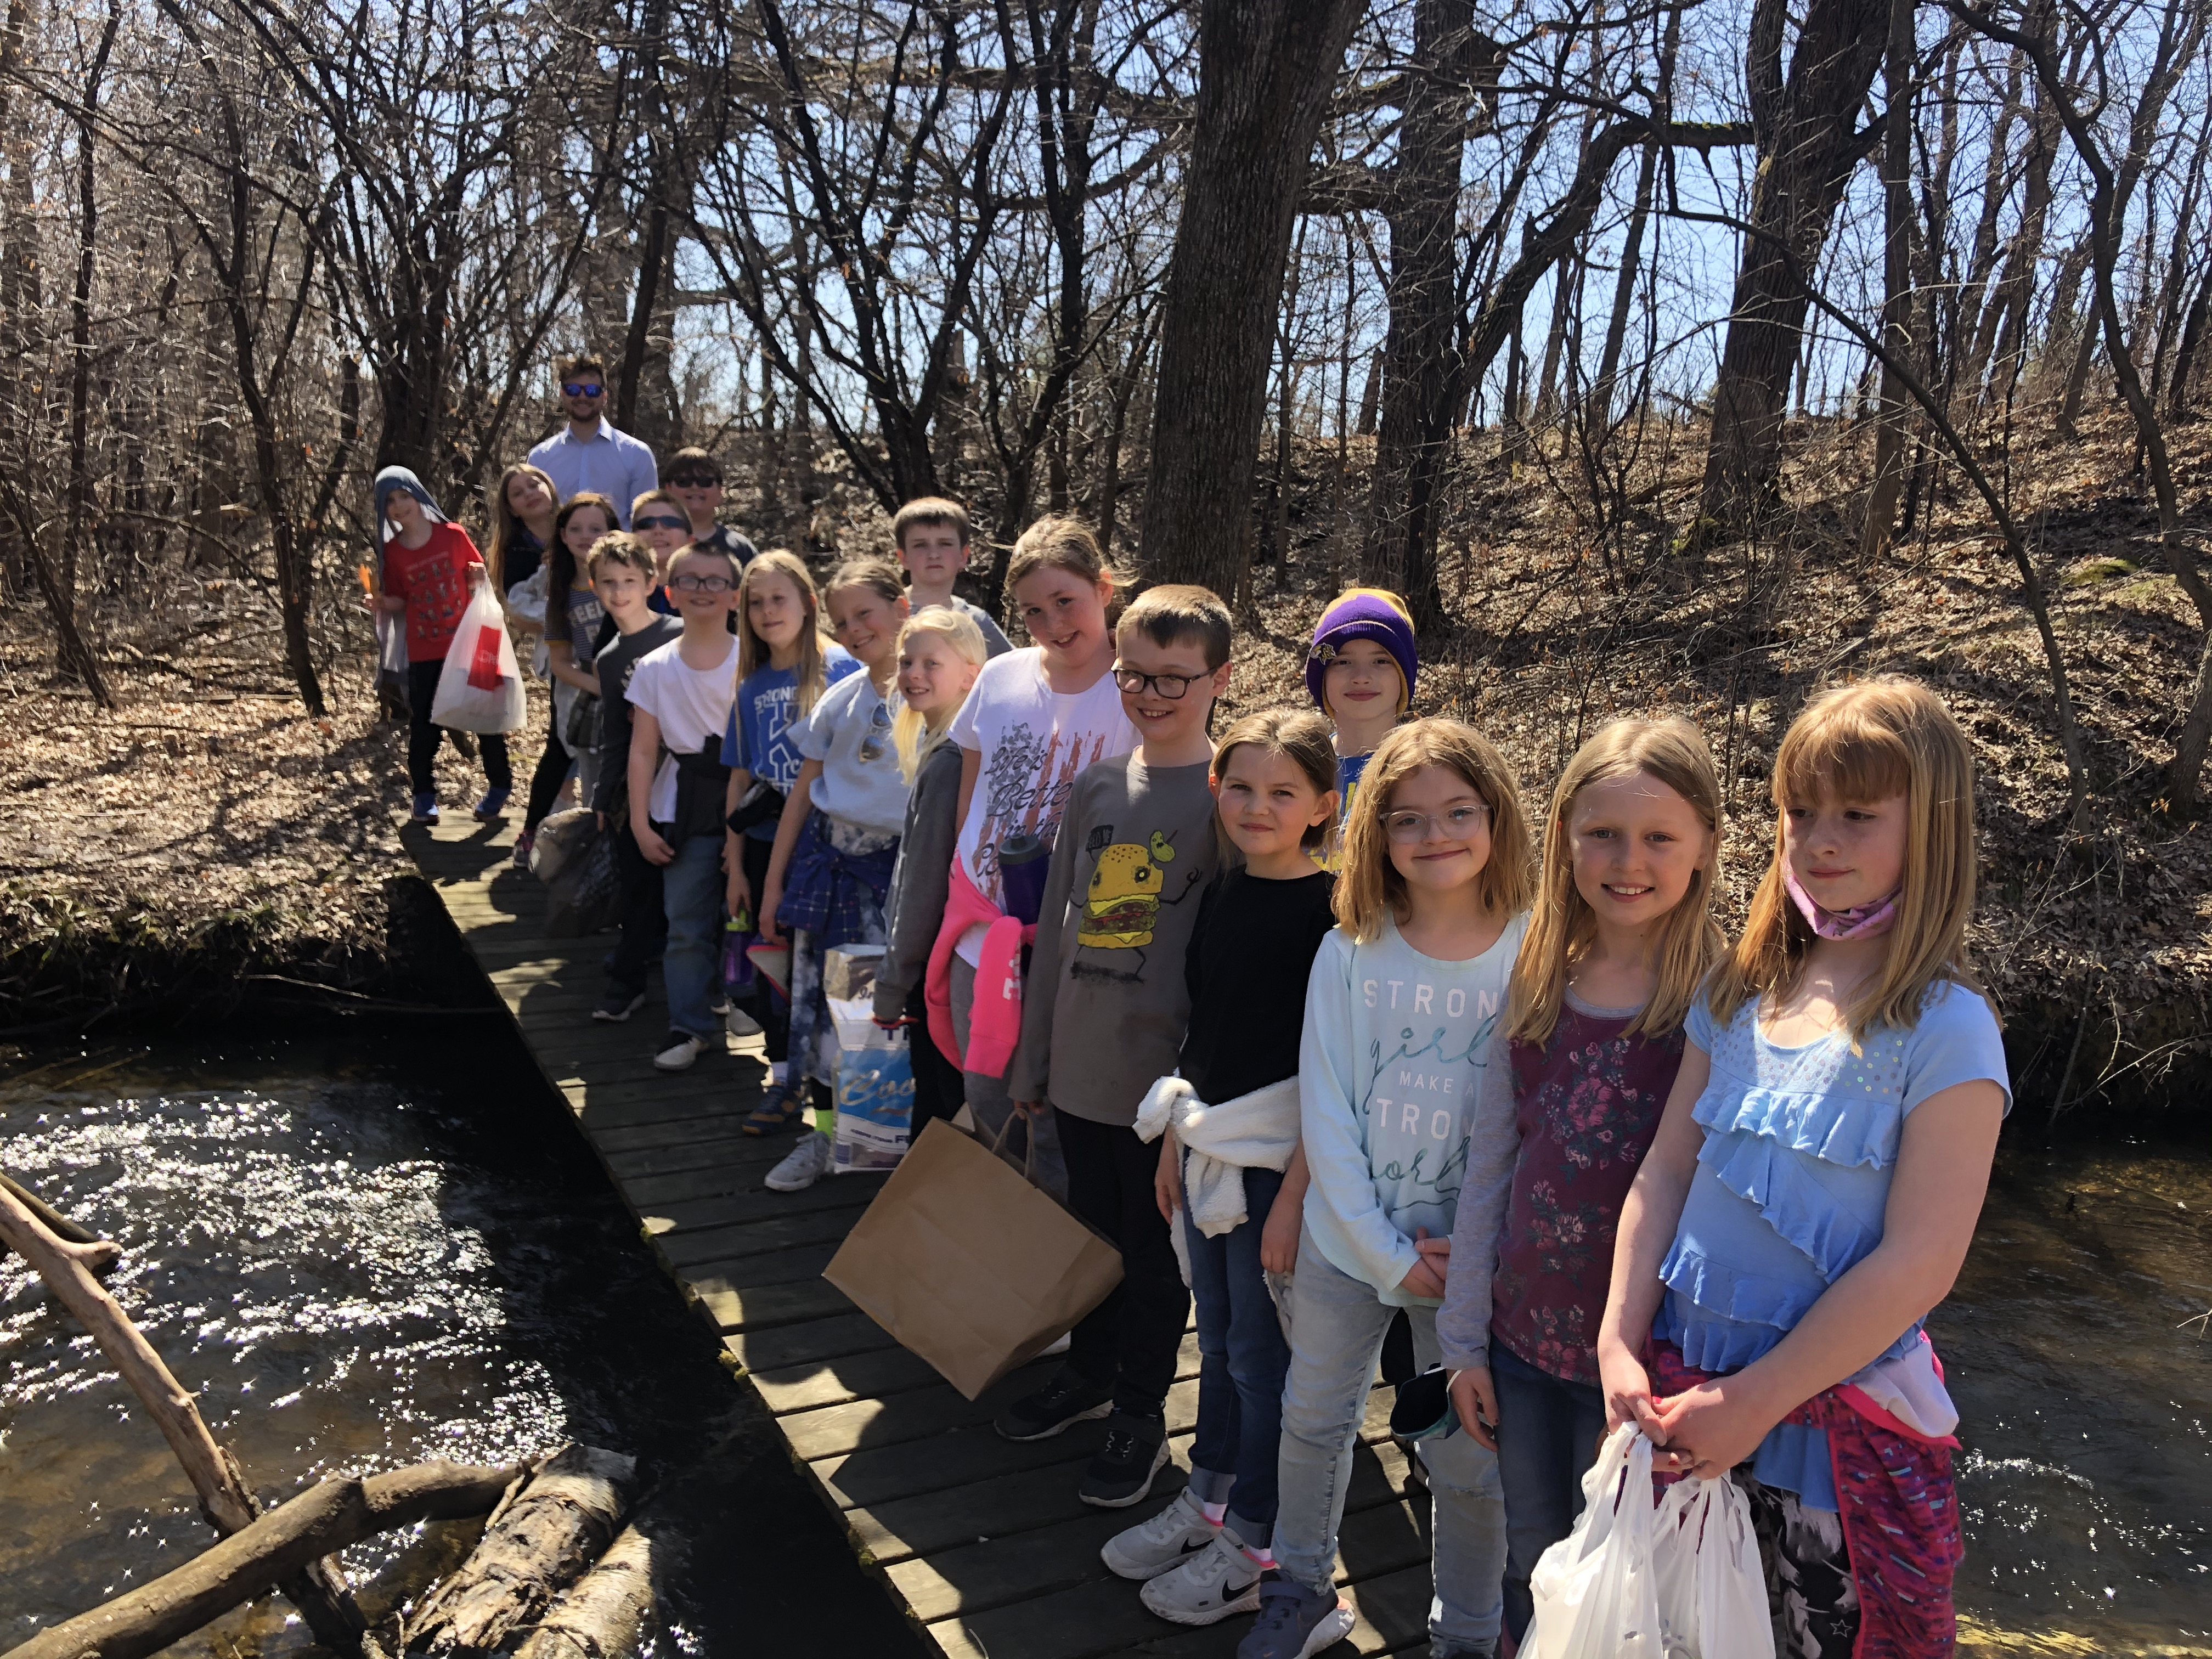 Willow Park Clean Up Day